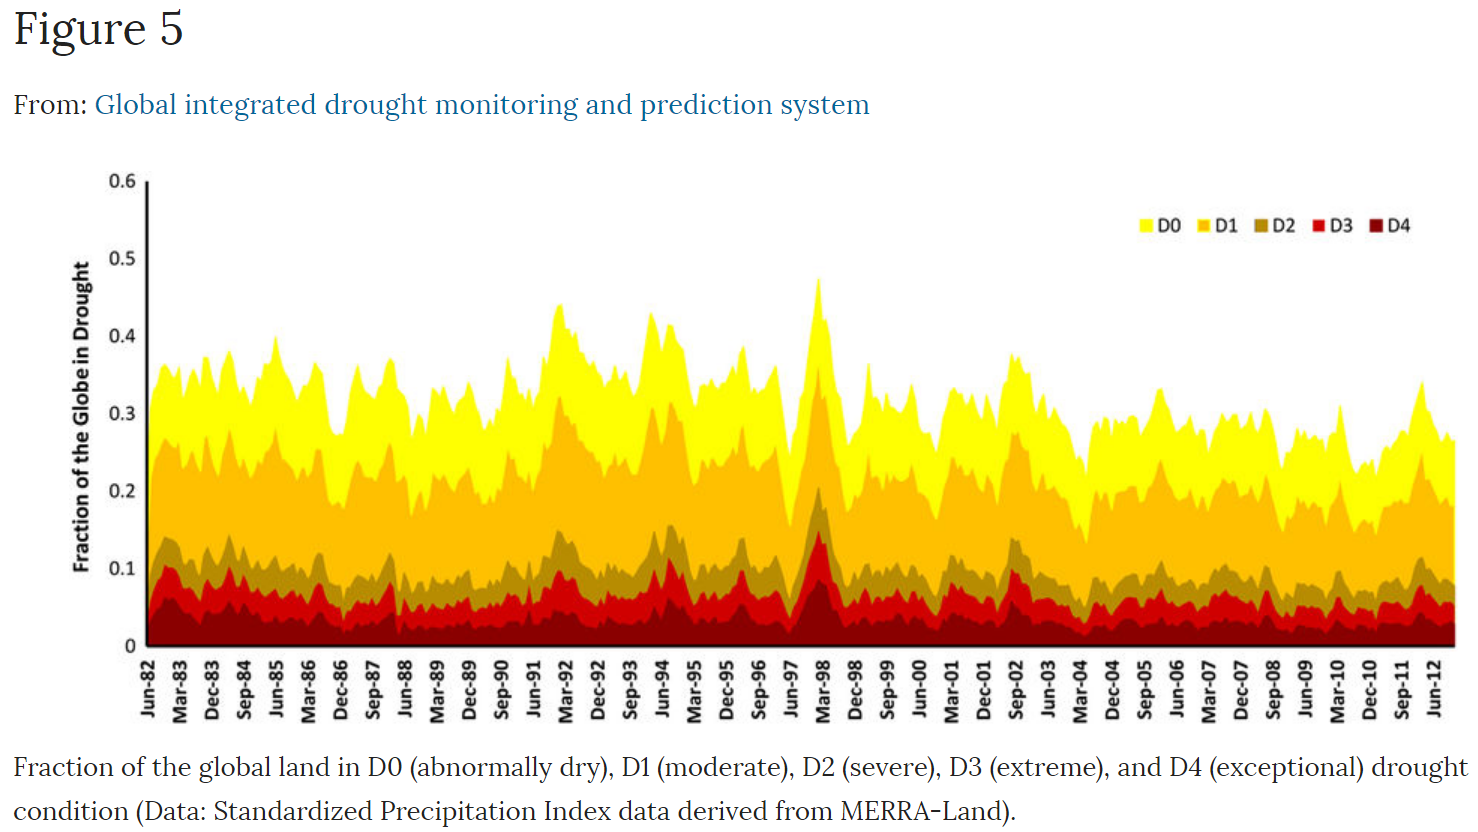 global drought trends, 1982-2012